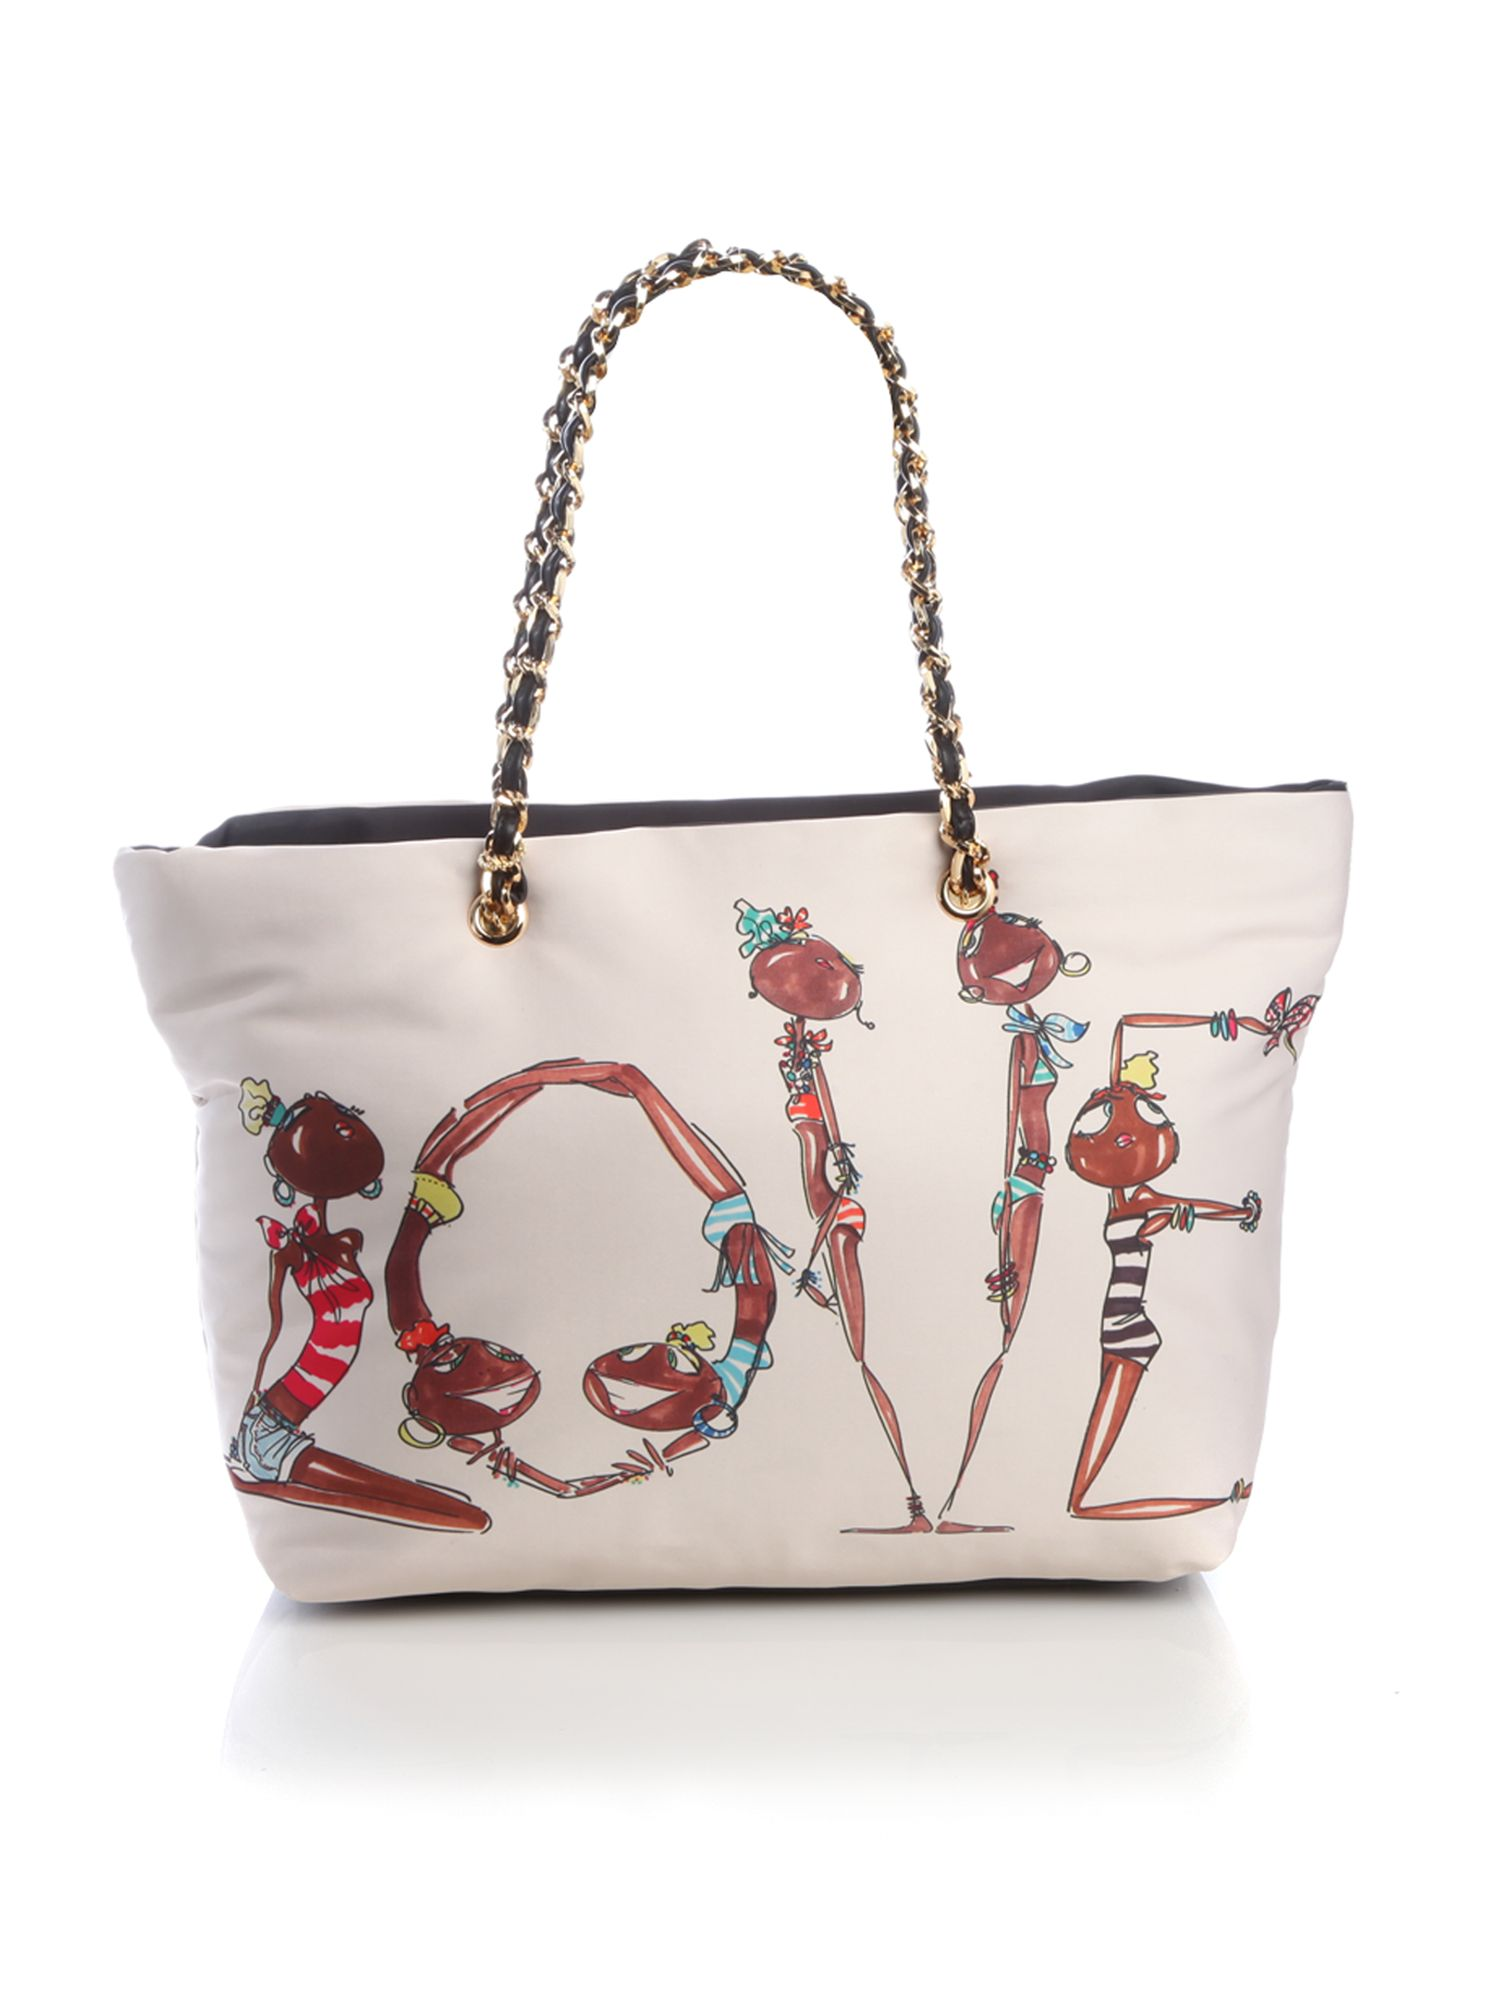 cashback charming five girls motif large shopper tote bag by love moschino. Black Bedroom Furniture Sets. Home Design Ideas